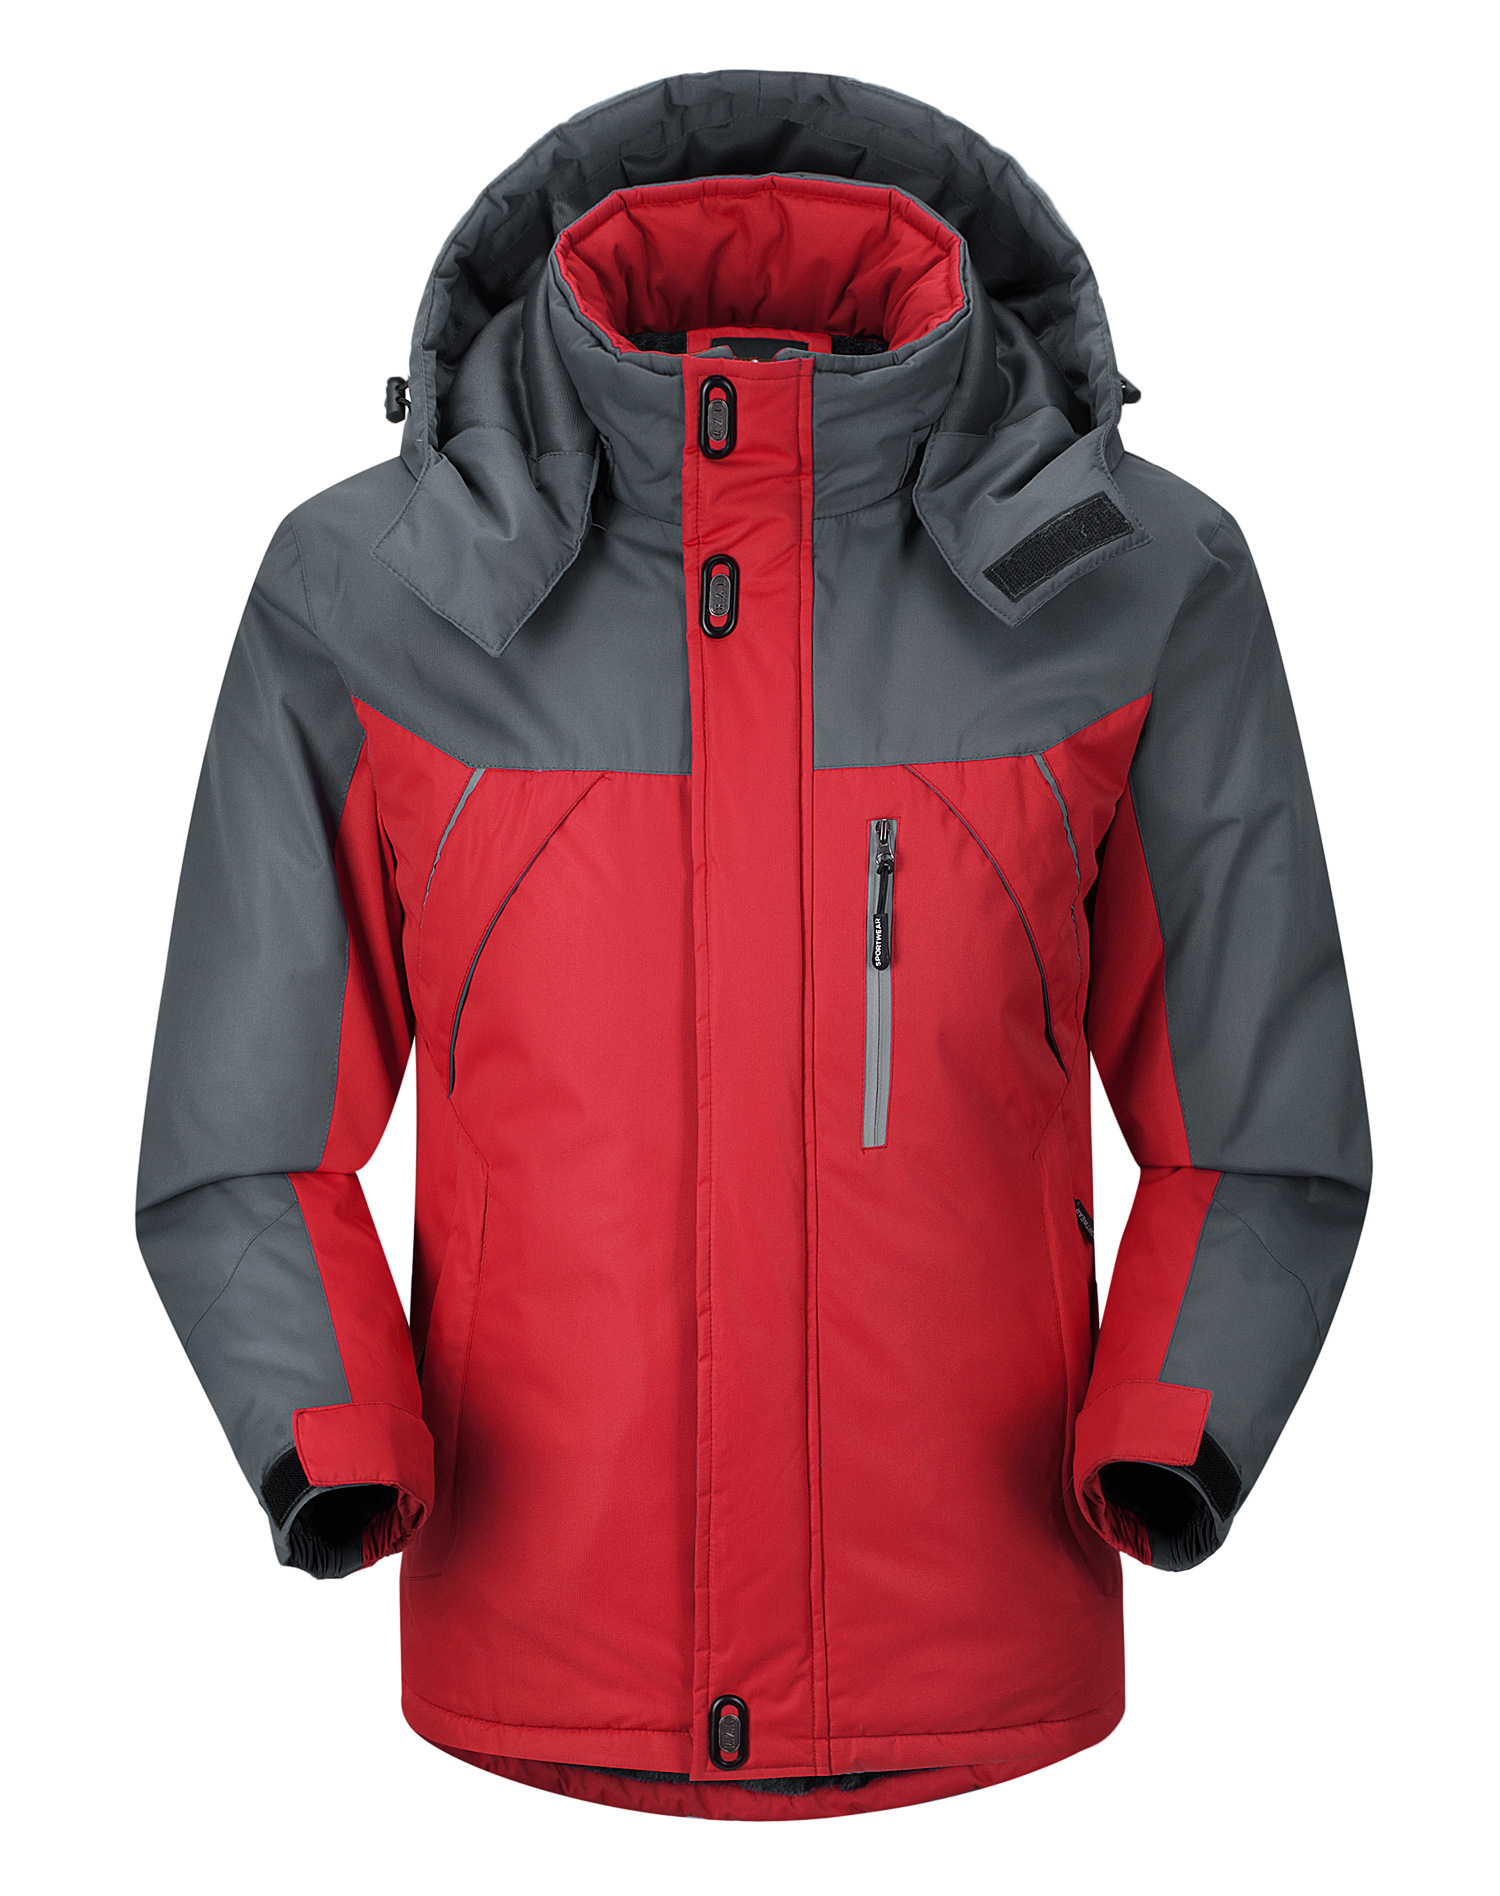 Men'S Winter Cotton Padded Jacket Large Size Thickened Stormsuit Warm Cotton Padded Clothes